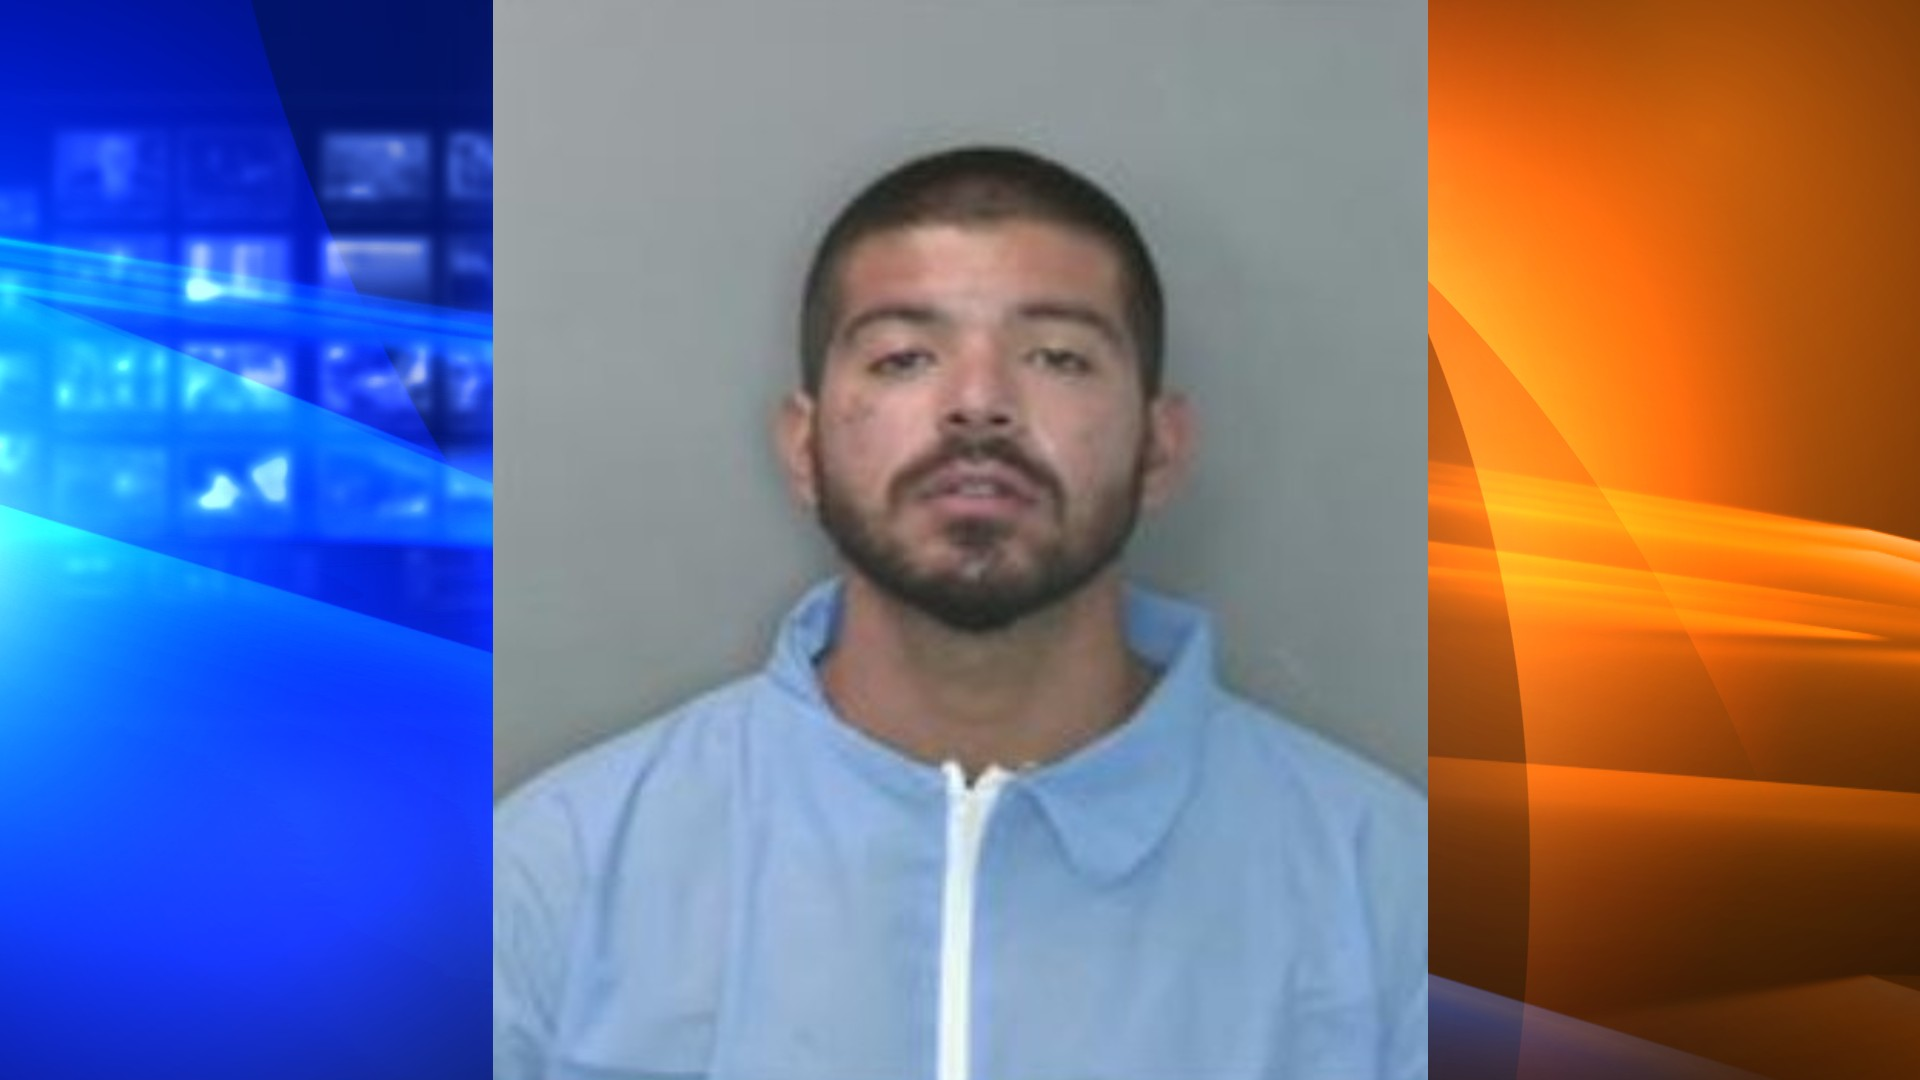 Andrew Isaiah Godinez was arrested by the Anaheim Police Department on Sept. 10, 2021. (Anaheim Police Department)